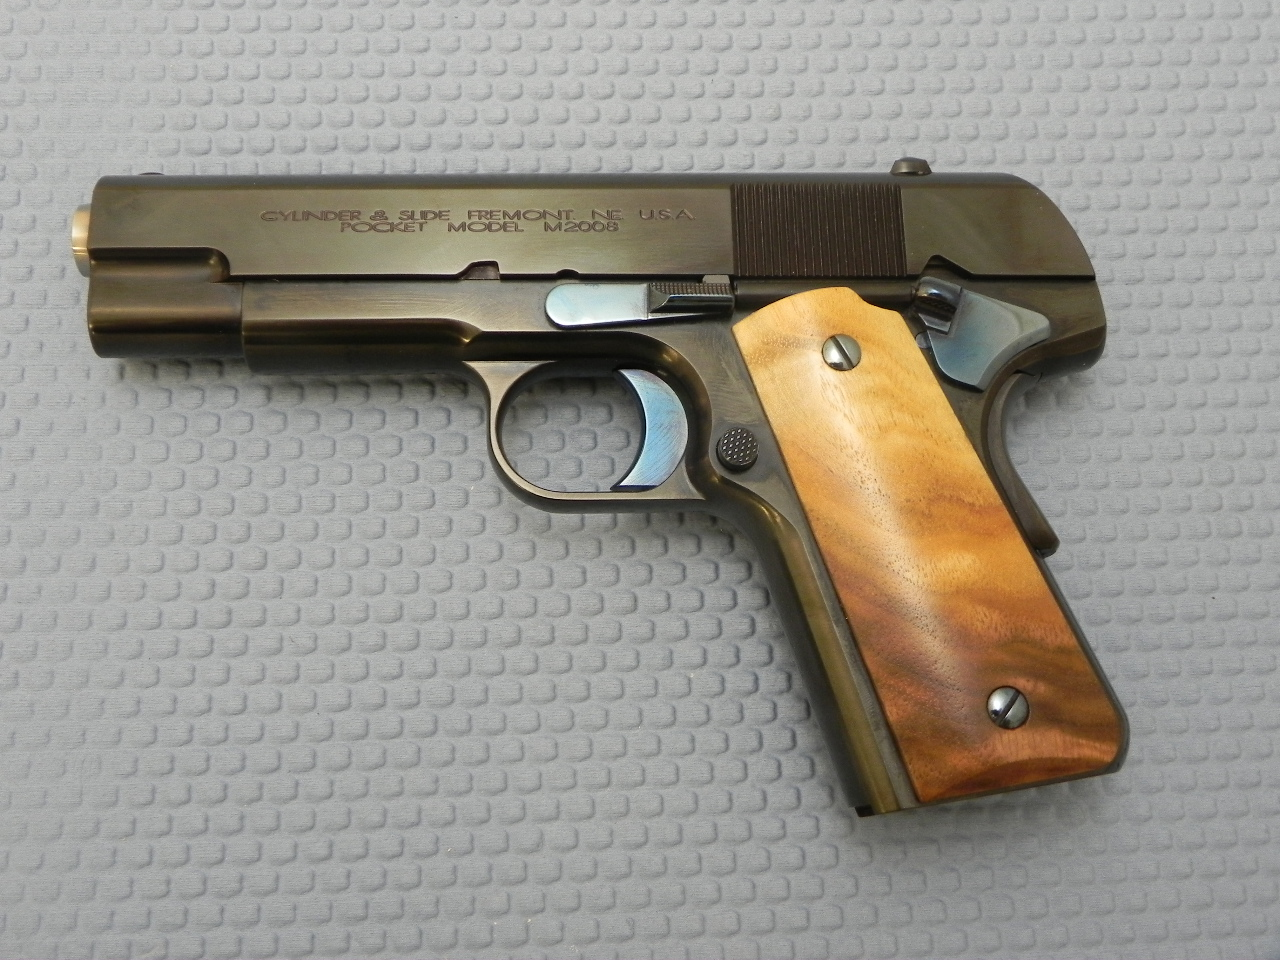 PM74 - Historical Pocket Model 45 ACP